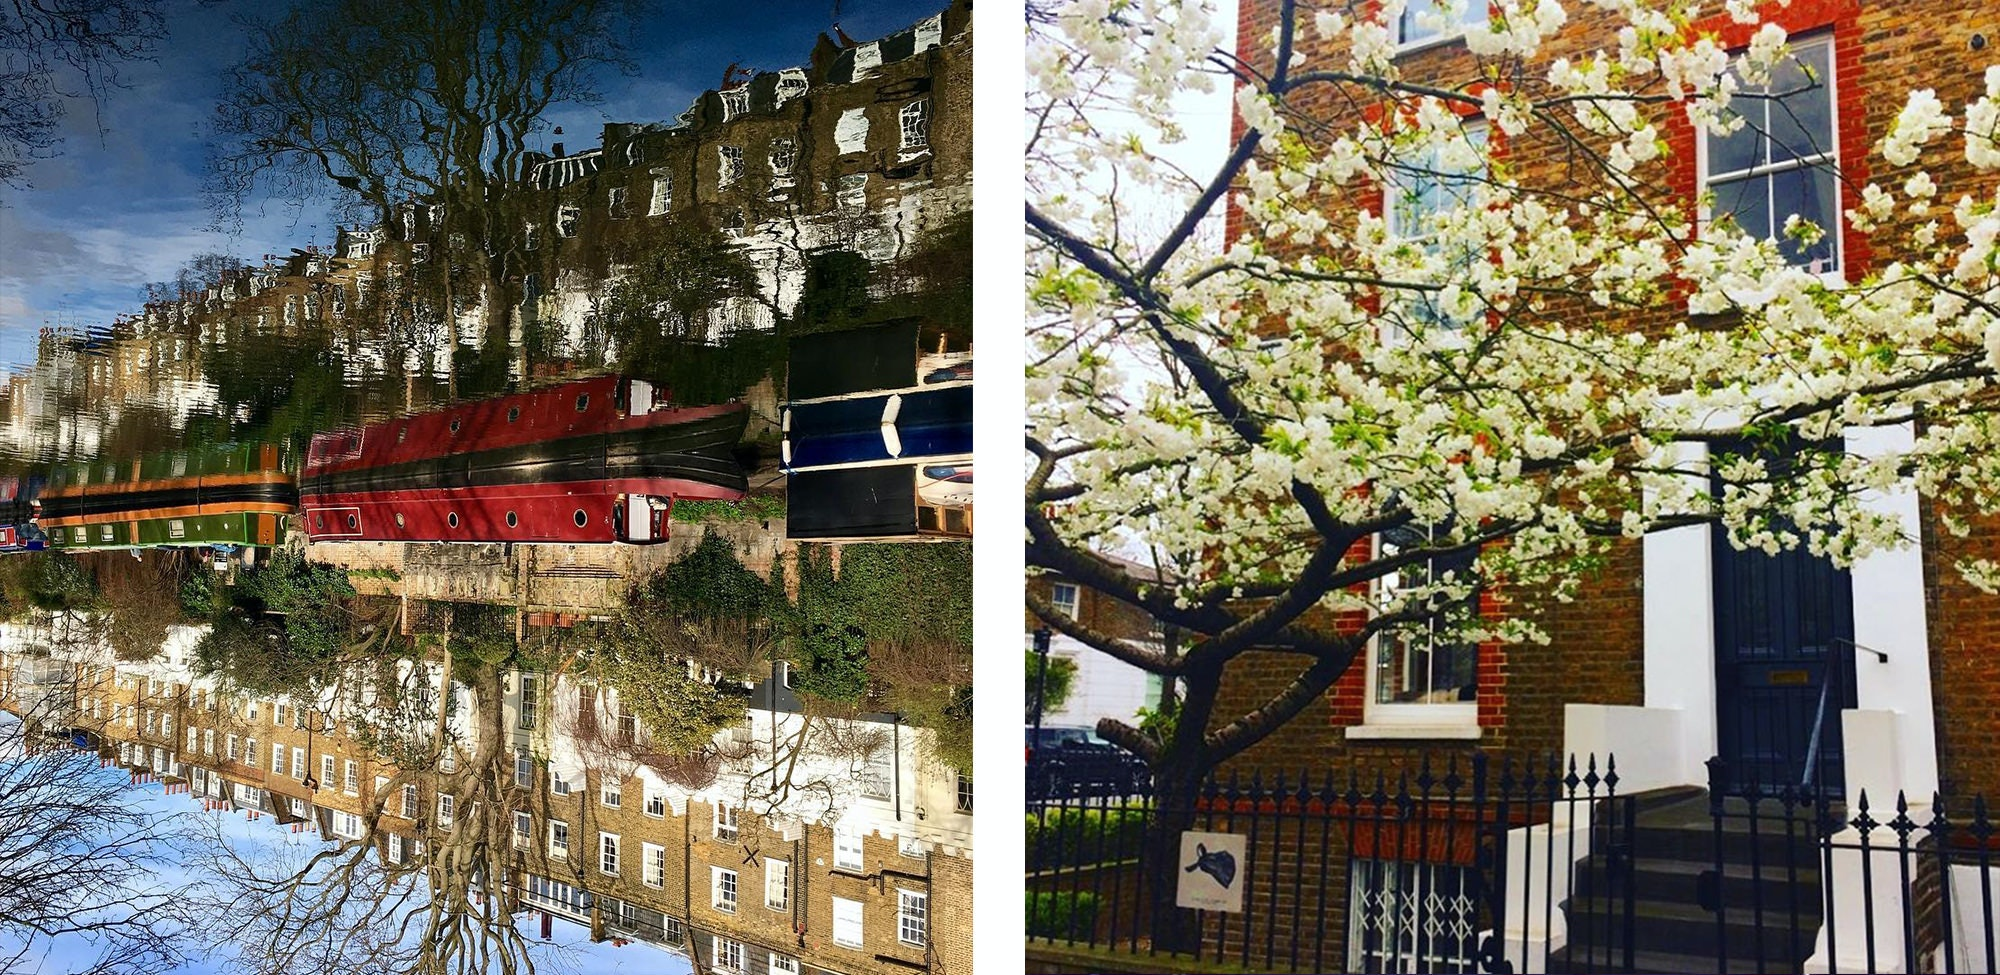 Evenings in Islington are slightly more reserved than in neighbouring King's Cross or De Beauvoir, so if thumping club nights aren't your scene, you can enjoy casual drinking at The Albion or The Hemingford Arms